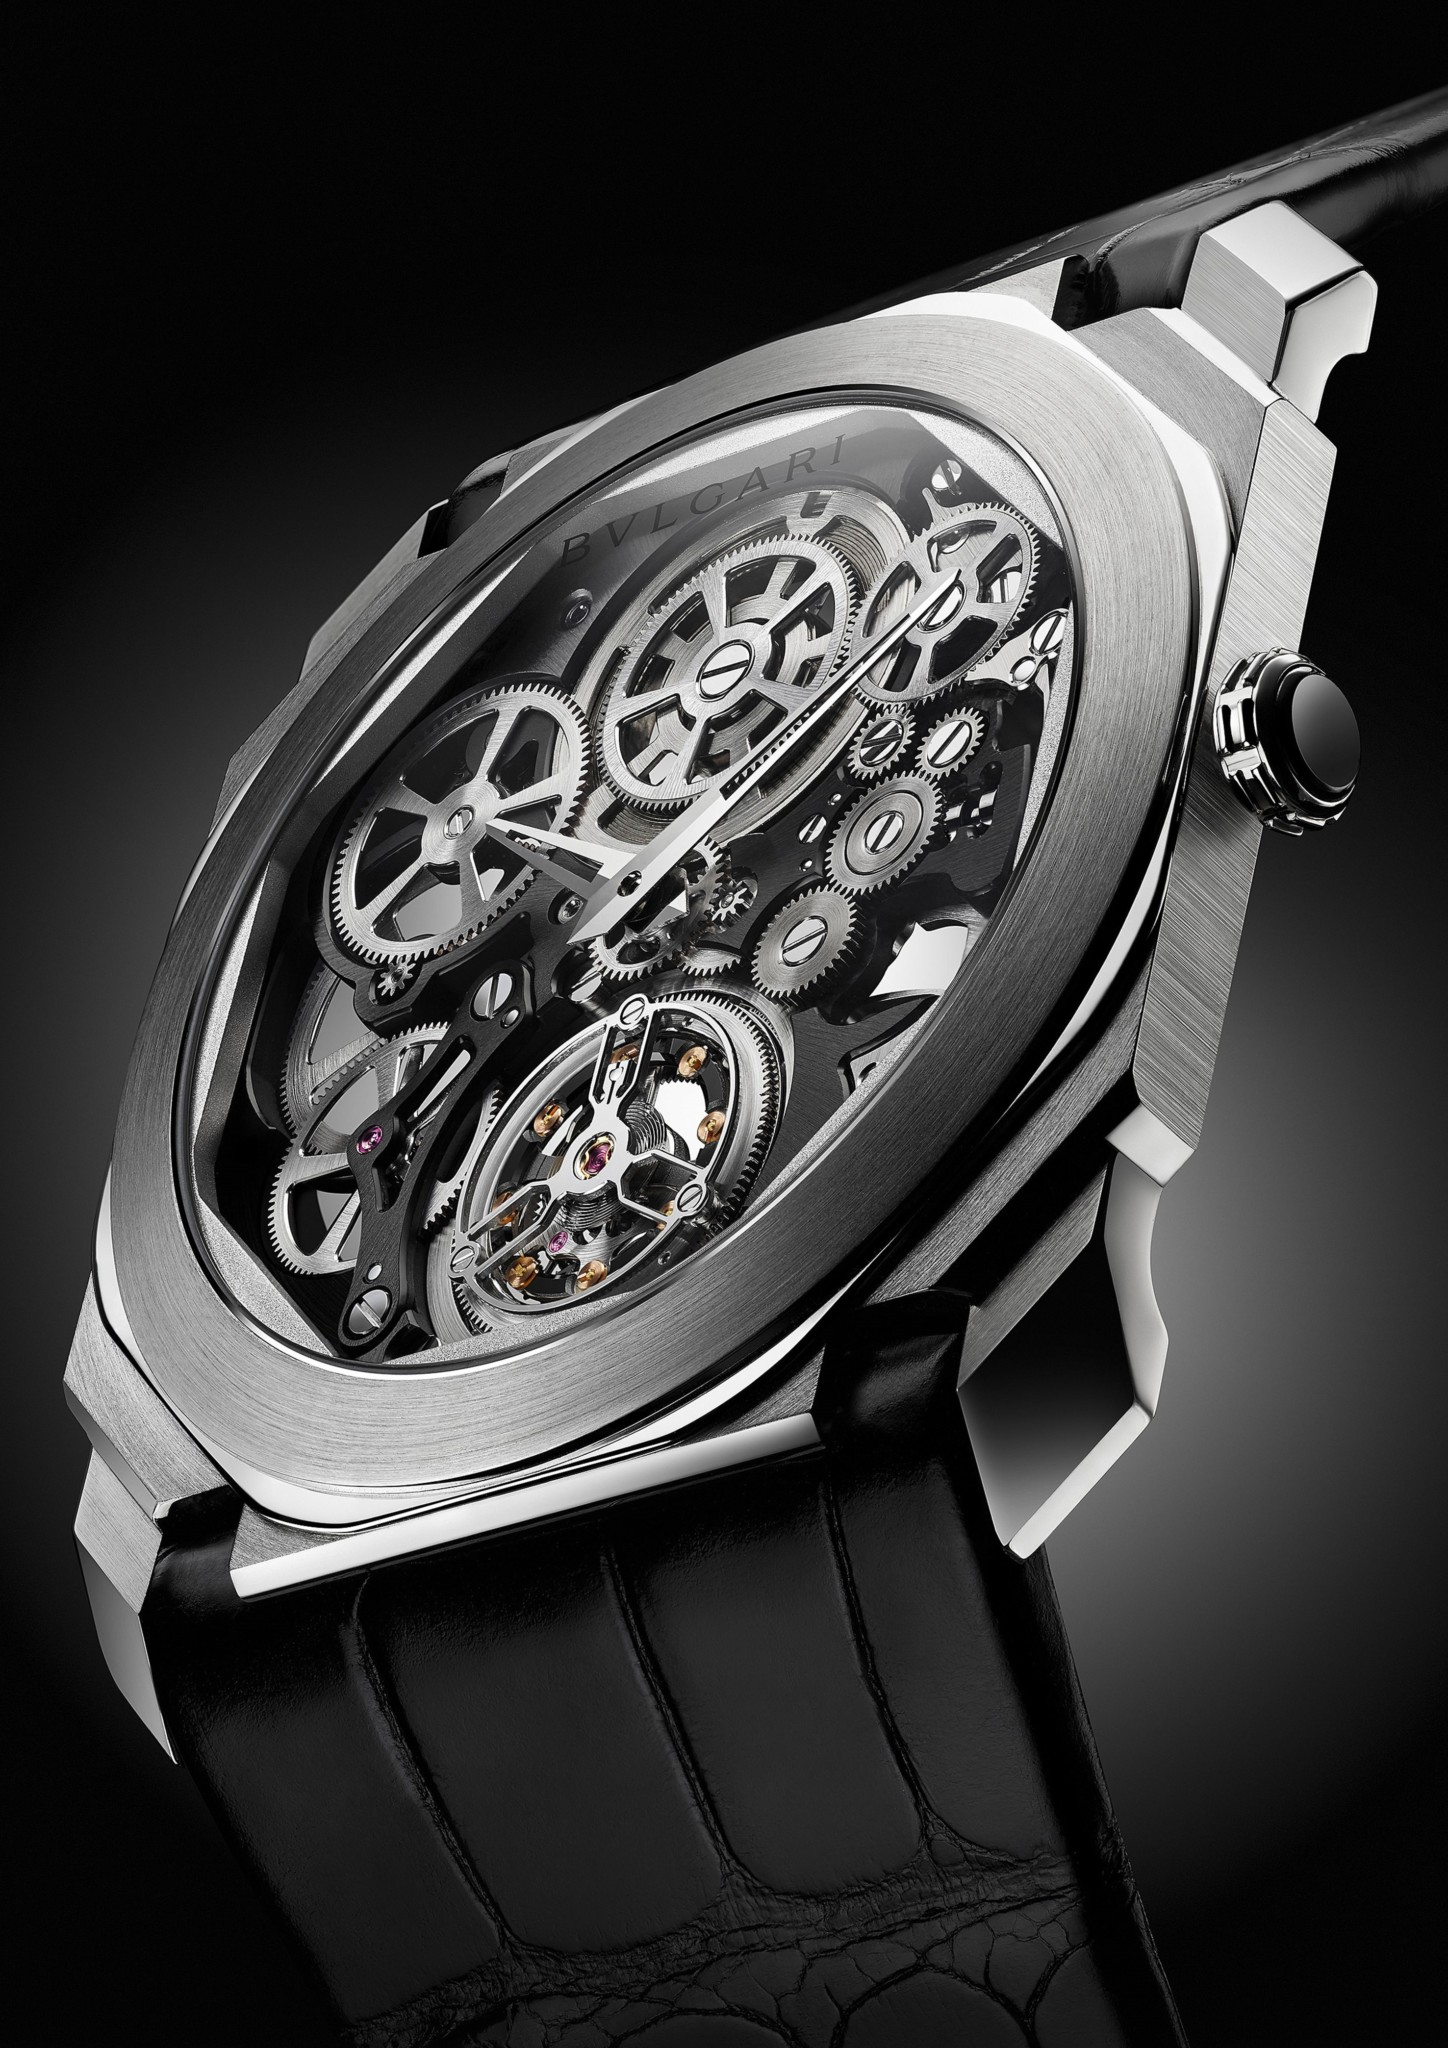 Tourbillon and Escapement Watch Prize: Bvlgari, Octo Finissimo.